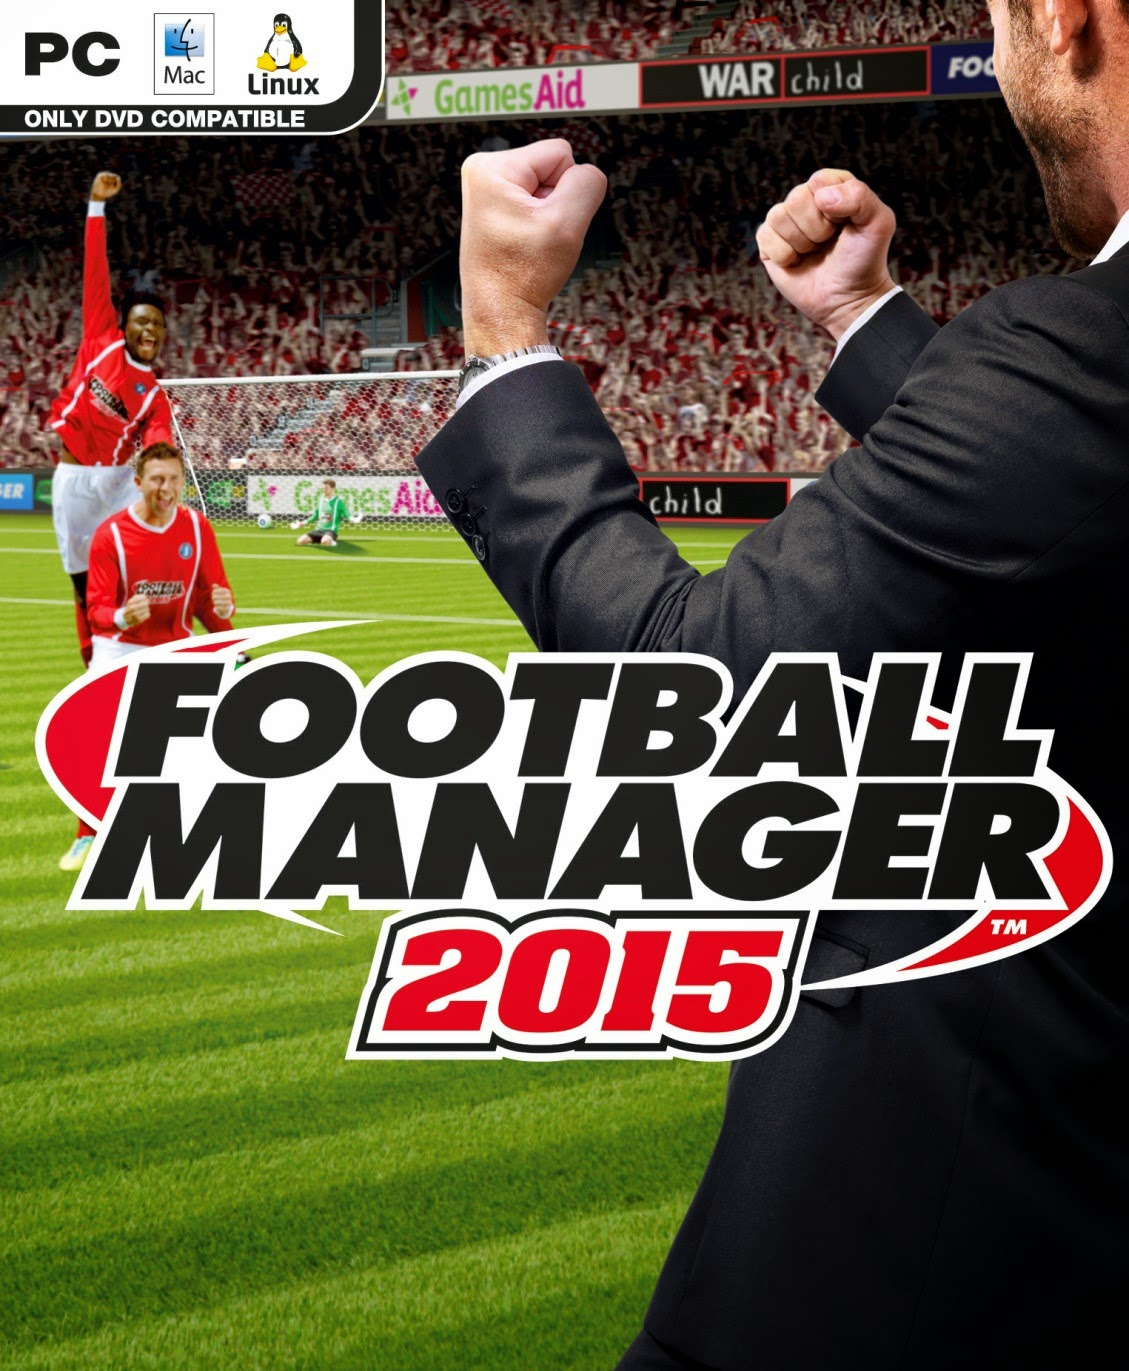 Download Football Manager 2015 v15.1.3 Full CRACK Free PC Games